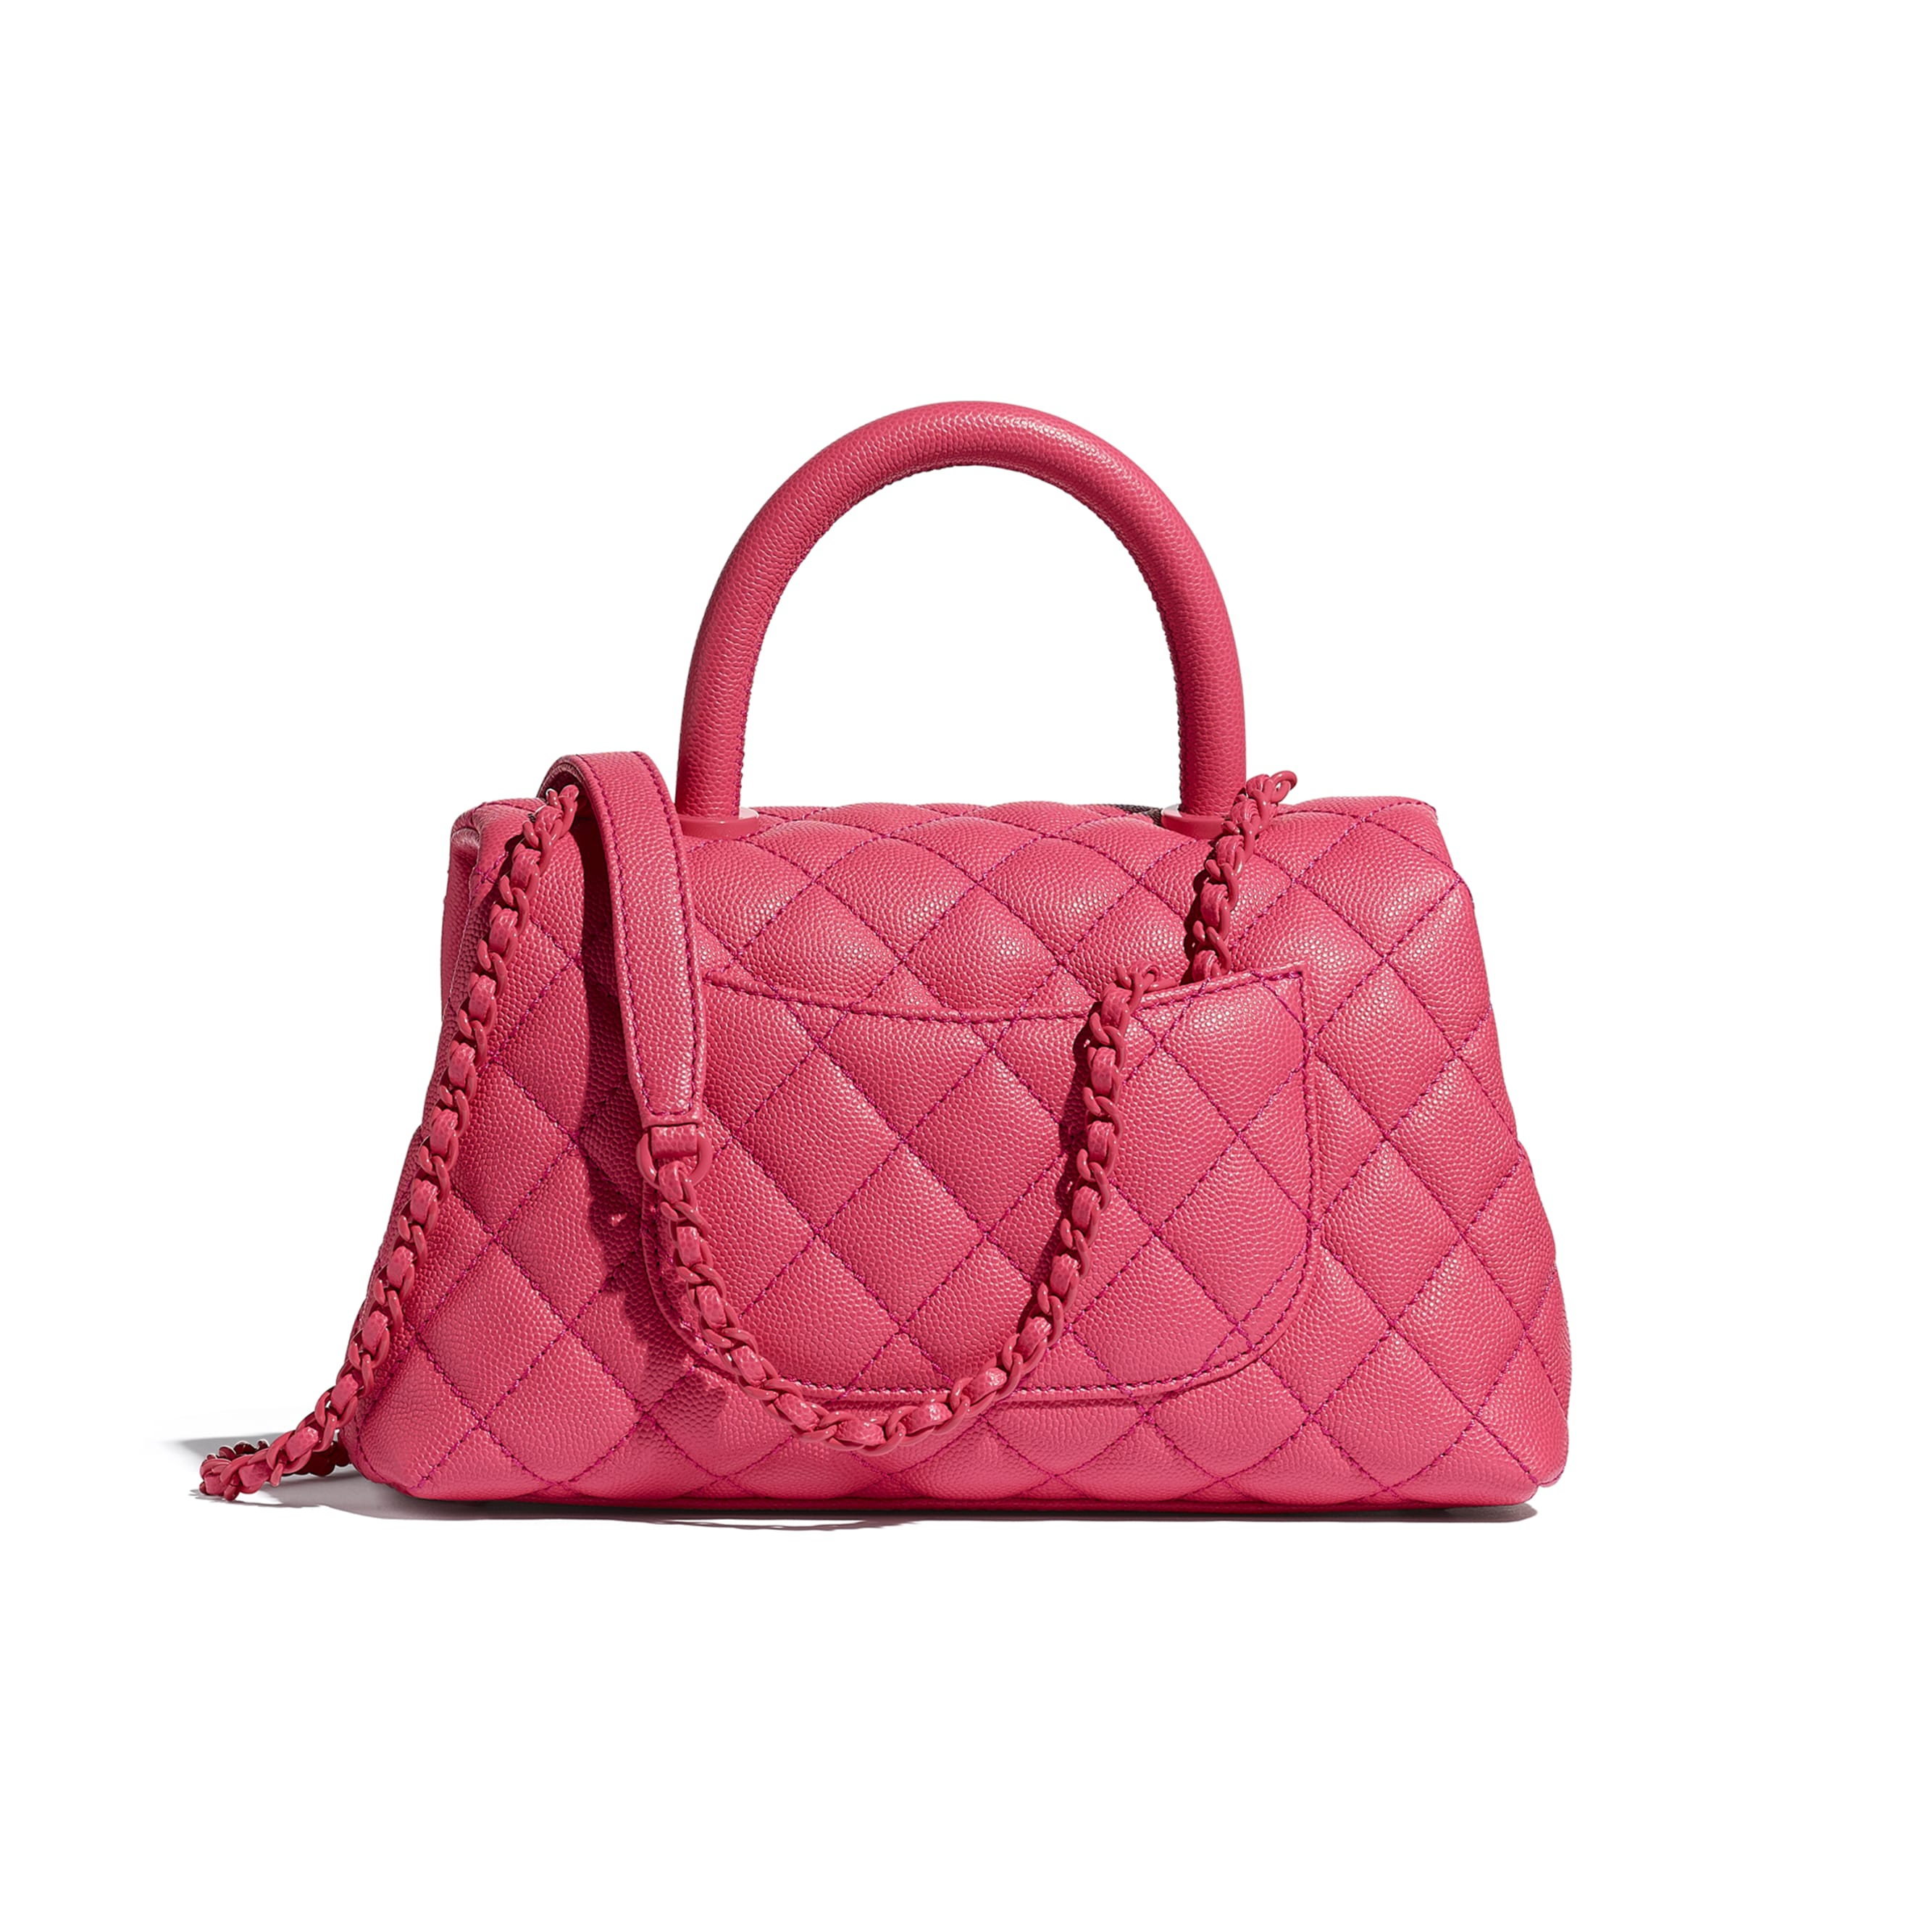 Flap Bag With Top Handle - Pink - Grained Calfskin & Lacquered Metal - CHANEL - Alternative view - see standard sized version